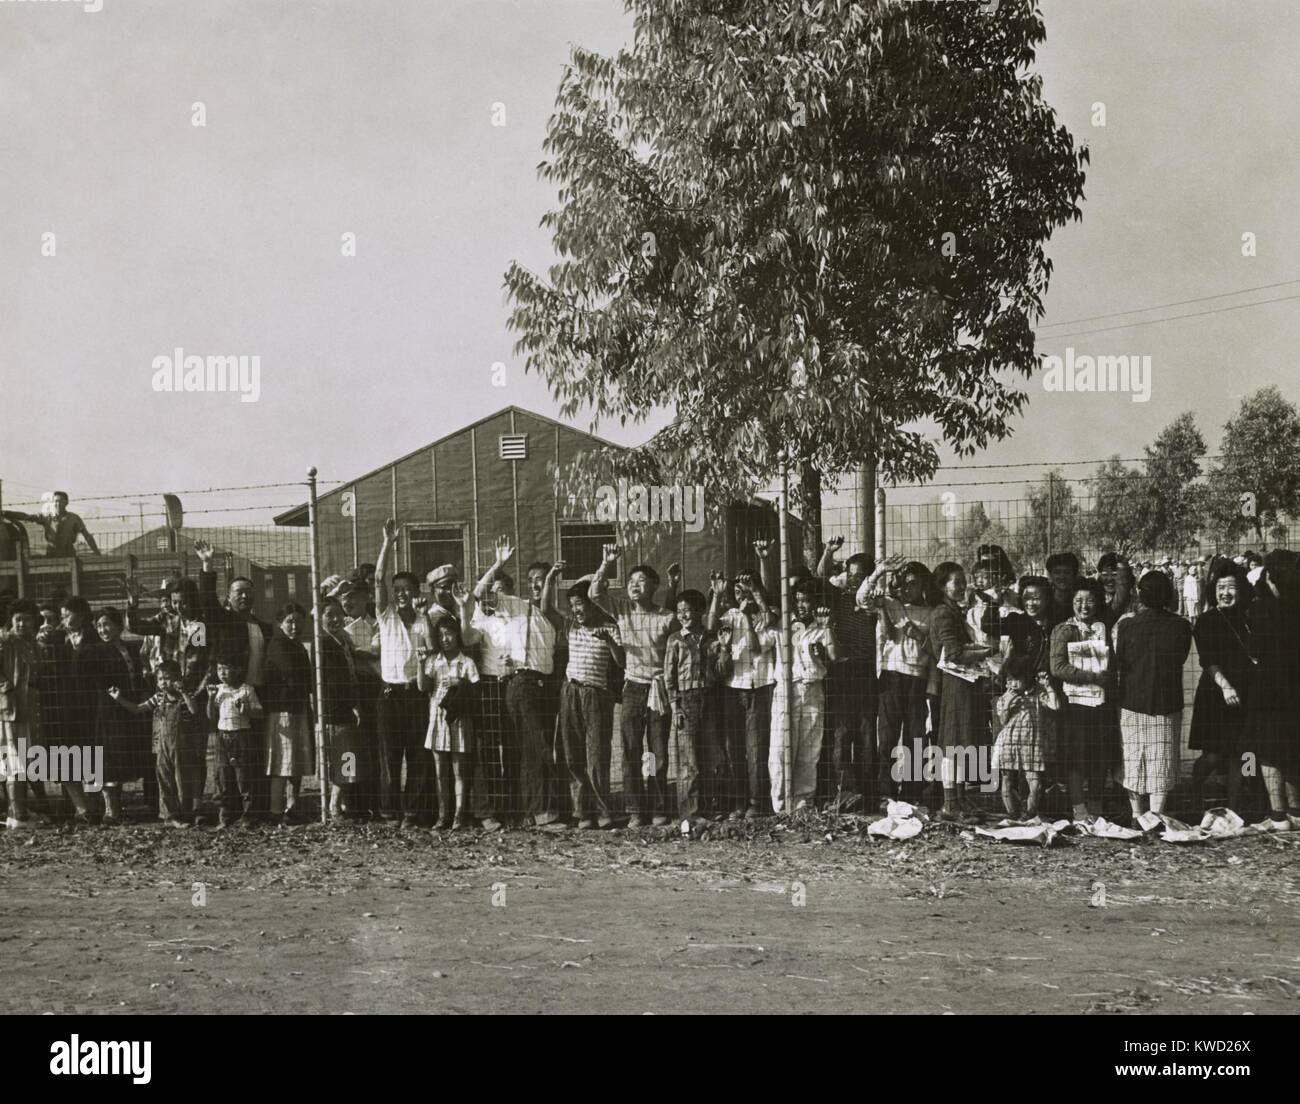 Japanese Americans internees waving farewell from behind a wire fence at Pomona, CA, 1942. Men, women, and children - Stock Image